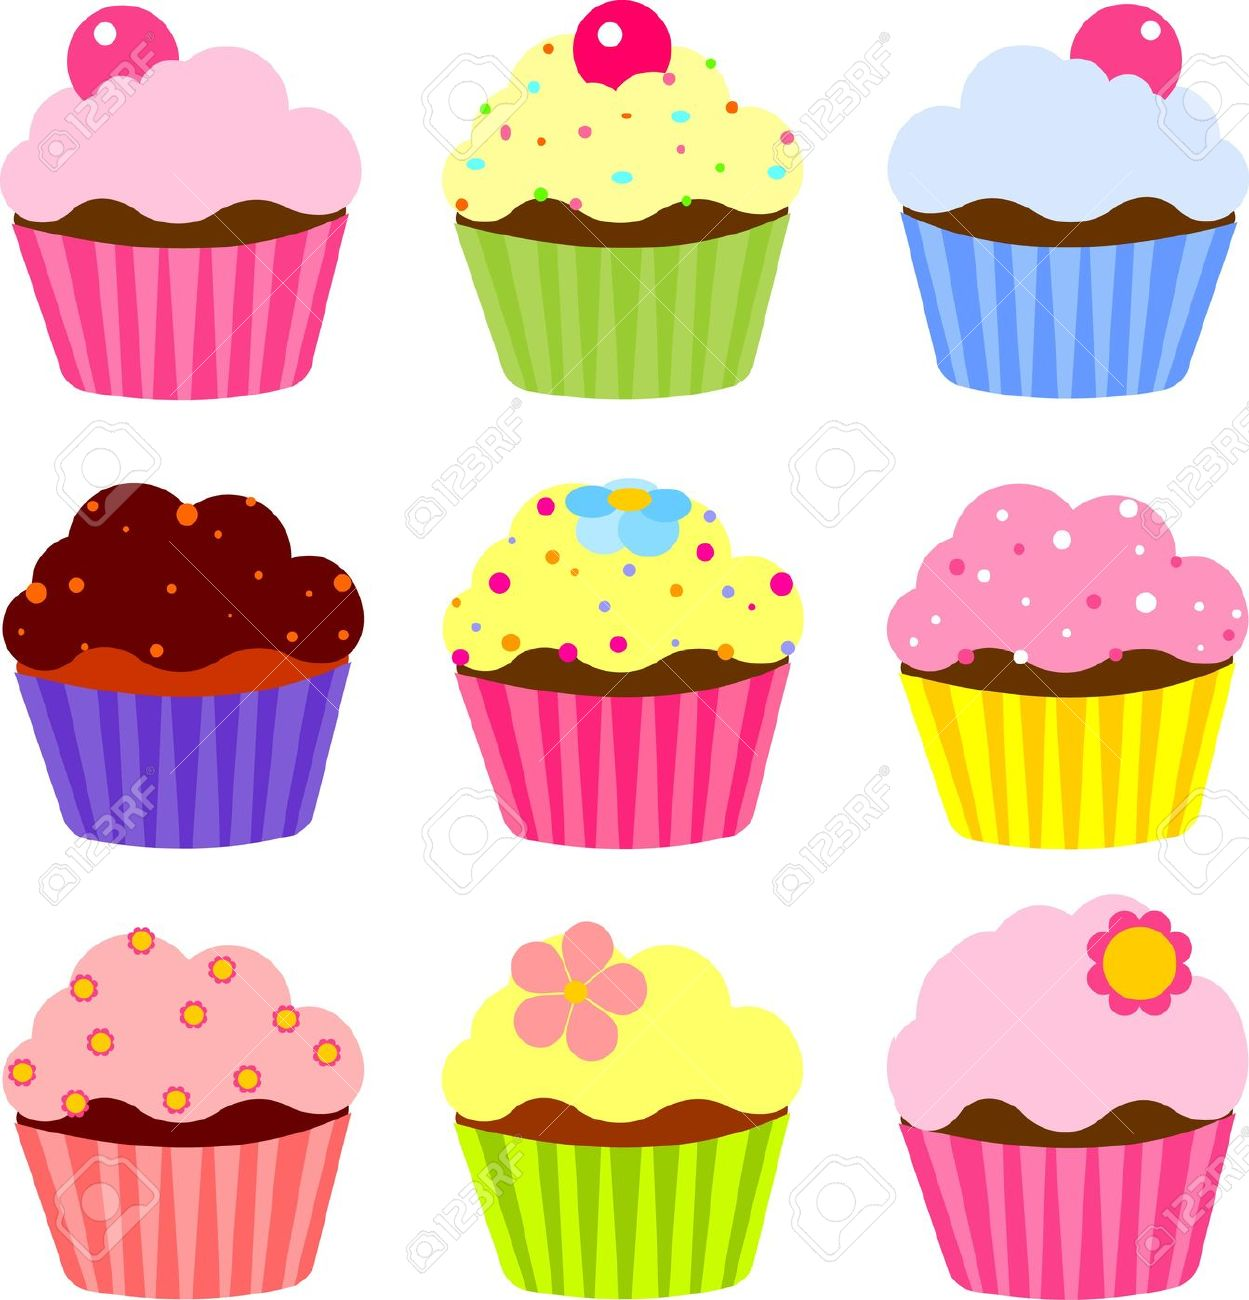 Muffin clipart birthday cupcake Cupcakes Fotolip and Cupcakes Rich